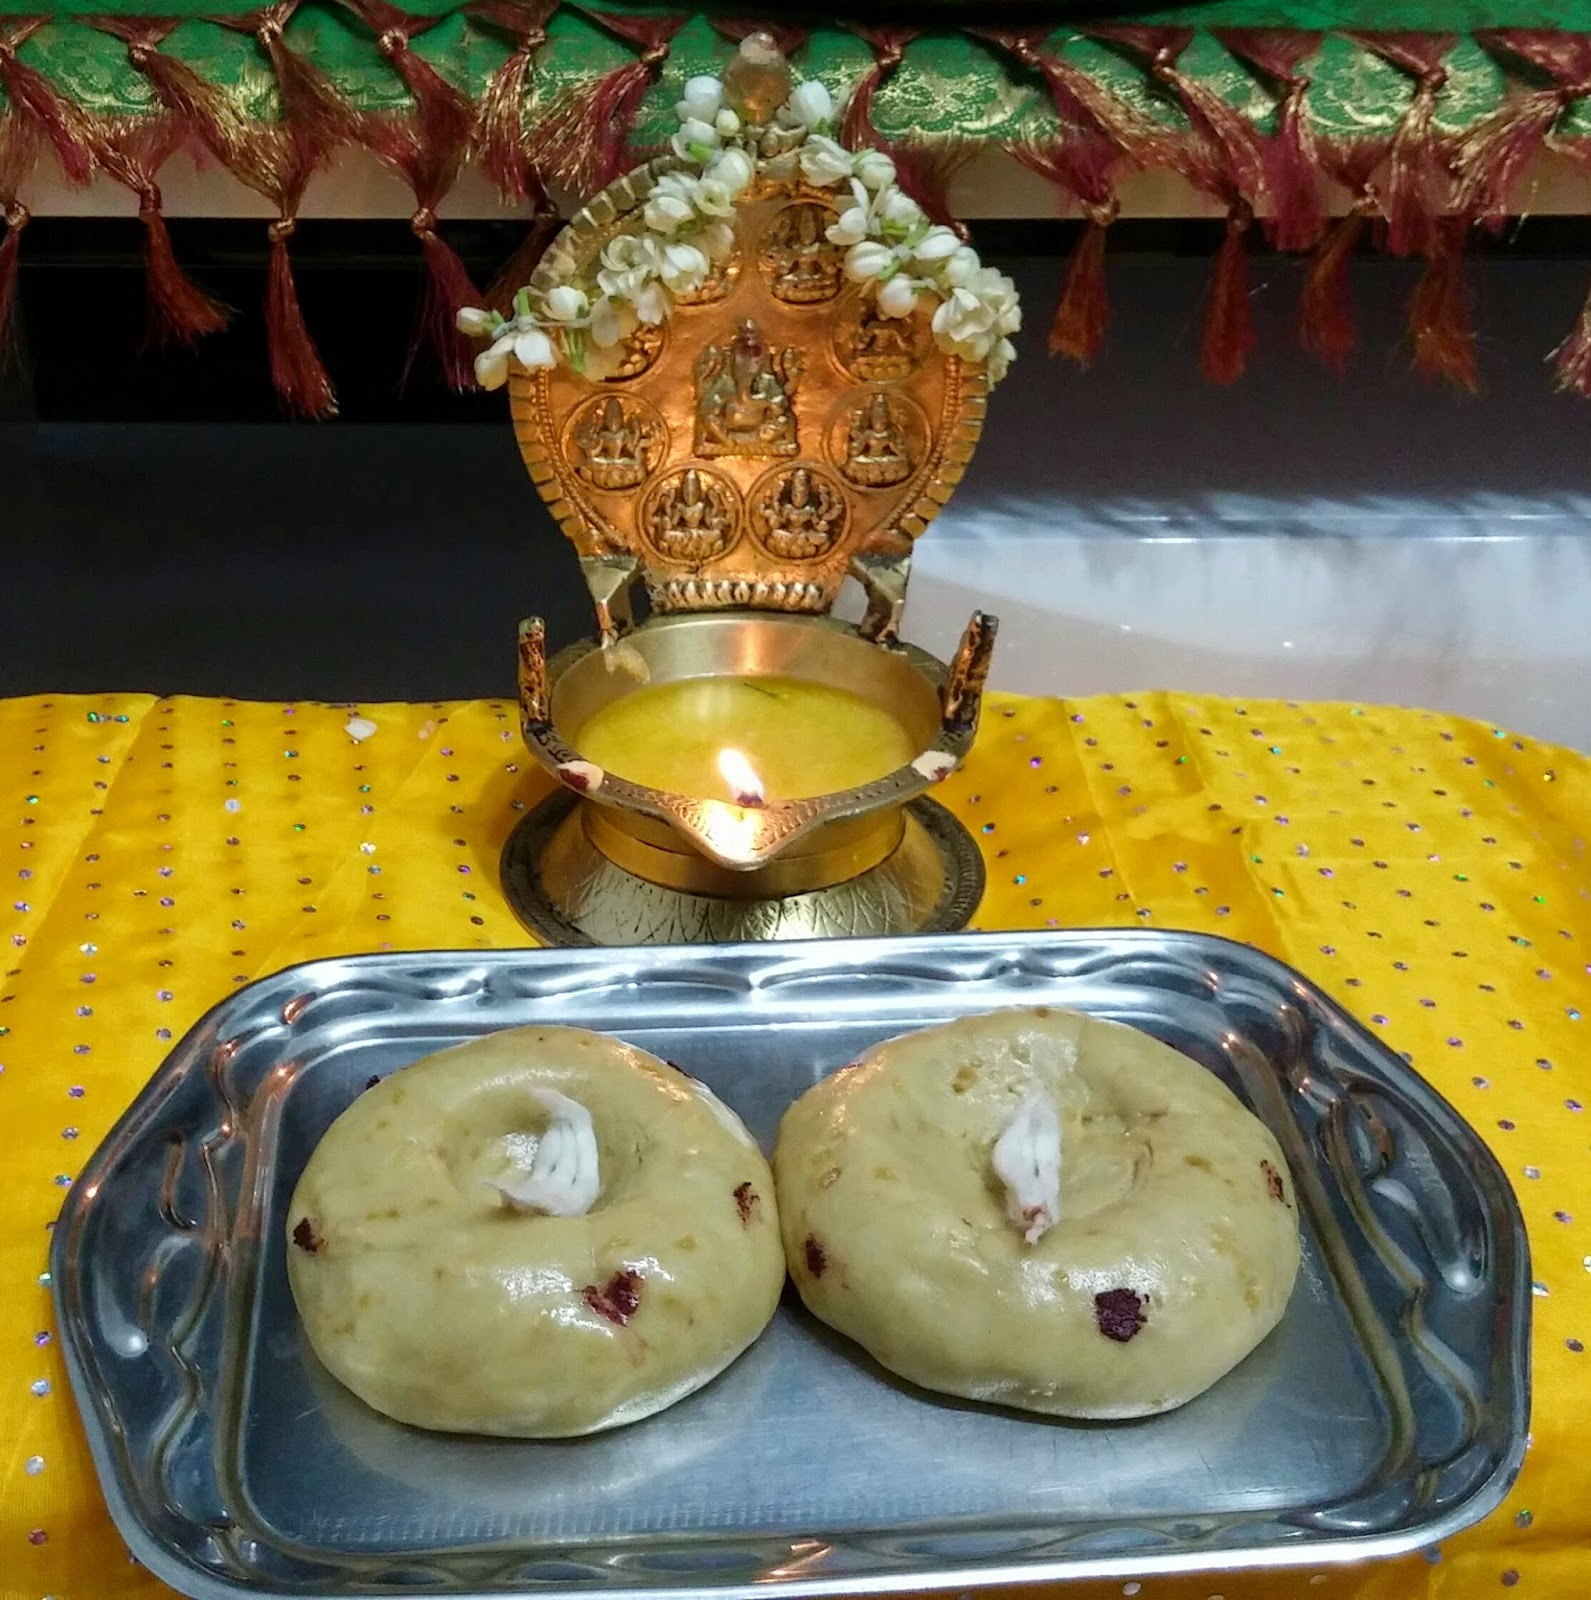 Ideas For Diwali Decoration At Home: Best Diwali Decoration Ideas For Home & Office